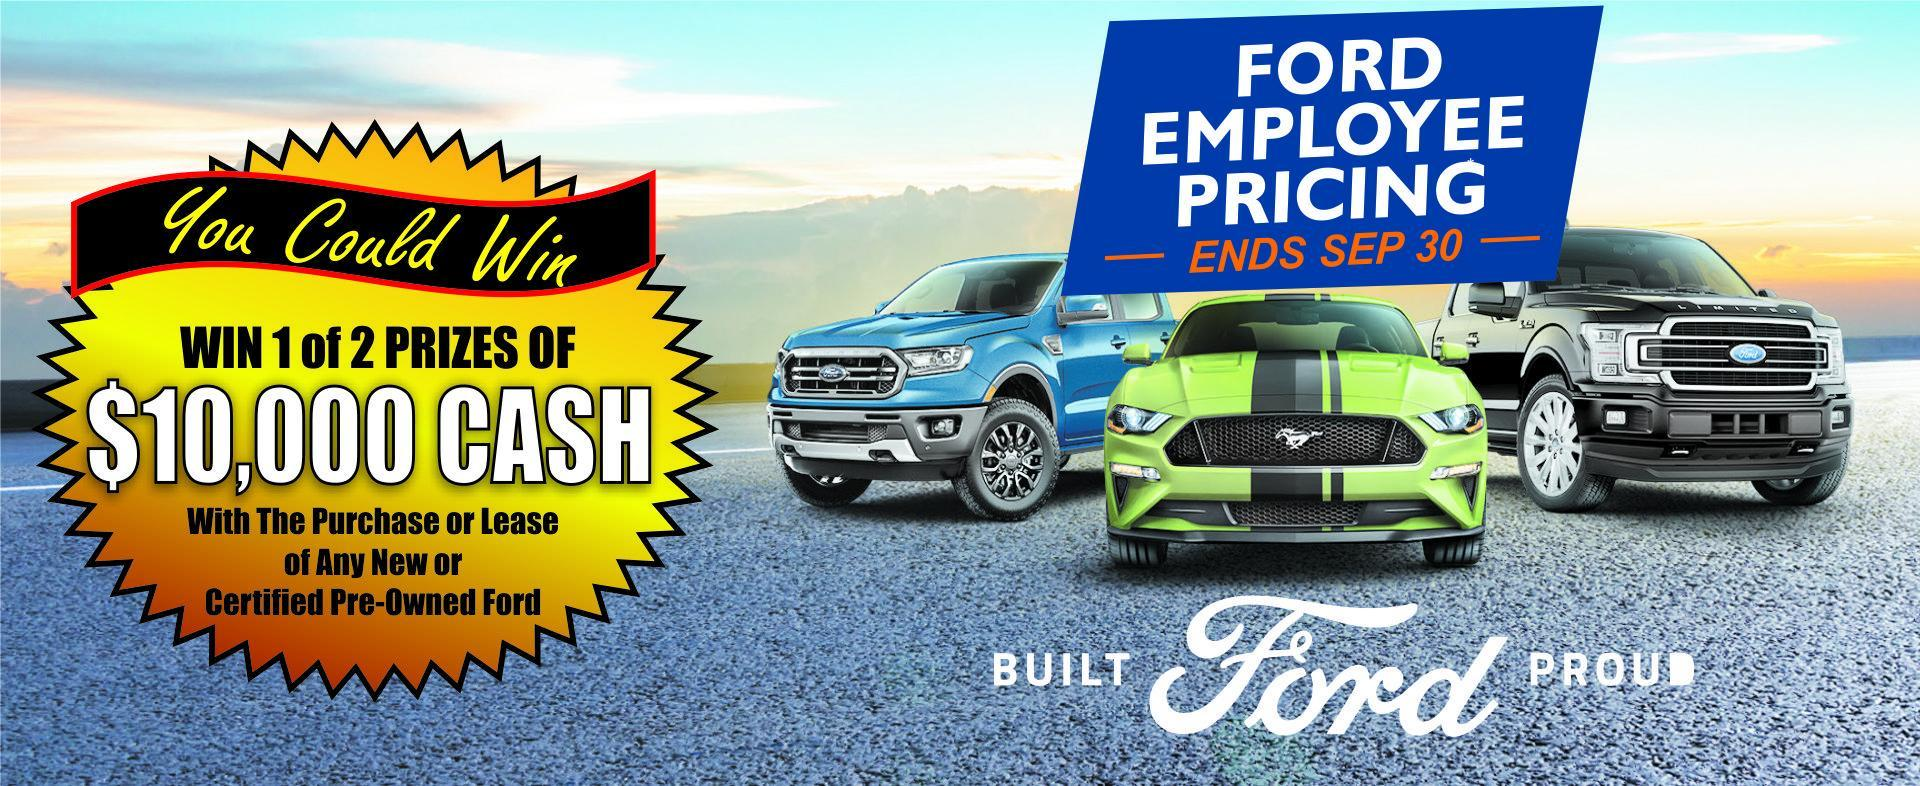 FORD EMPLOYEE PRICING EVENT LACOMBE FORD ALBERTA